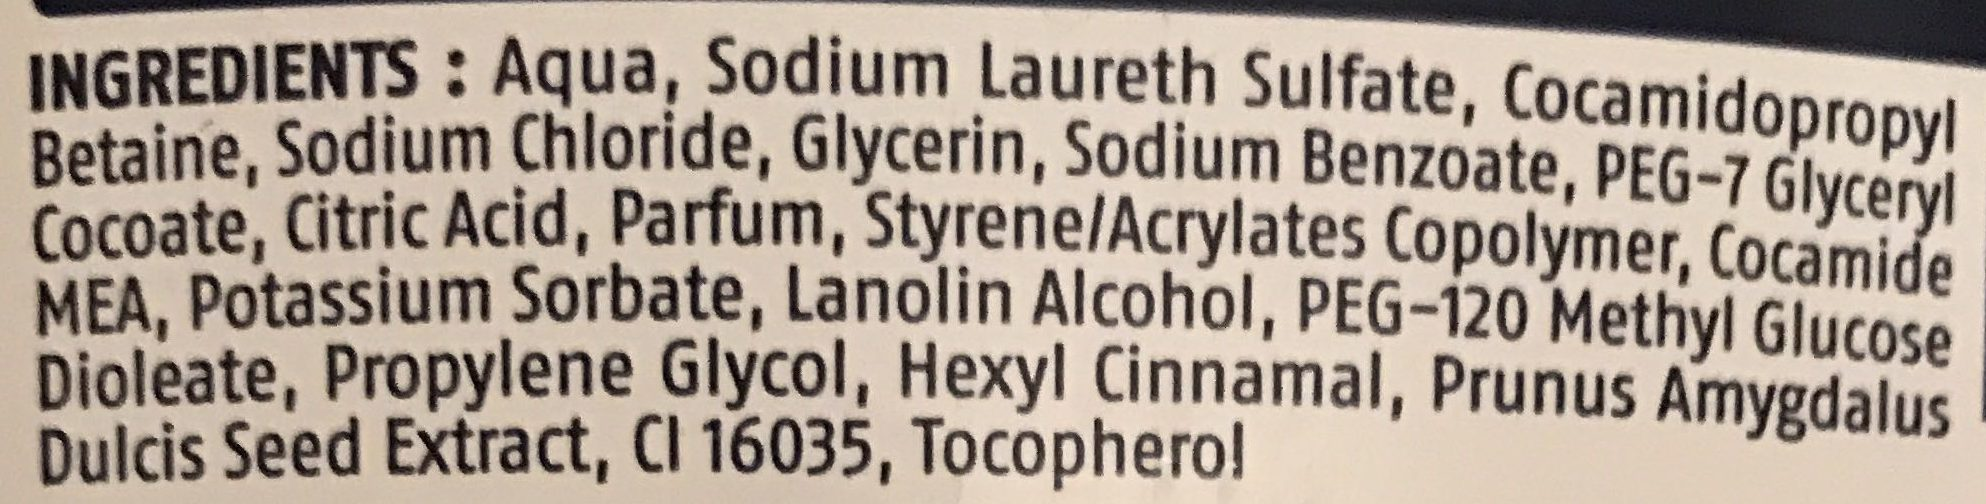 Savon liquide amande - Ingredients